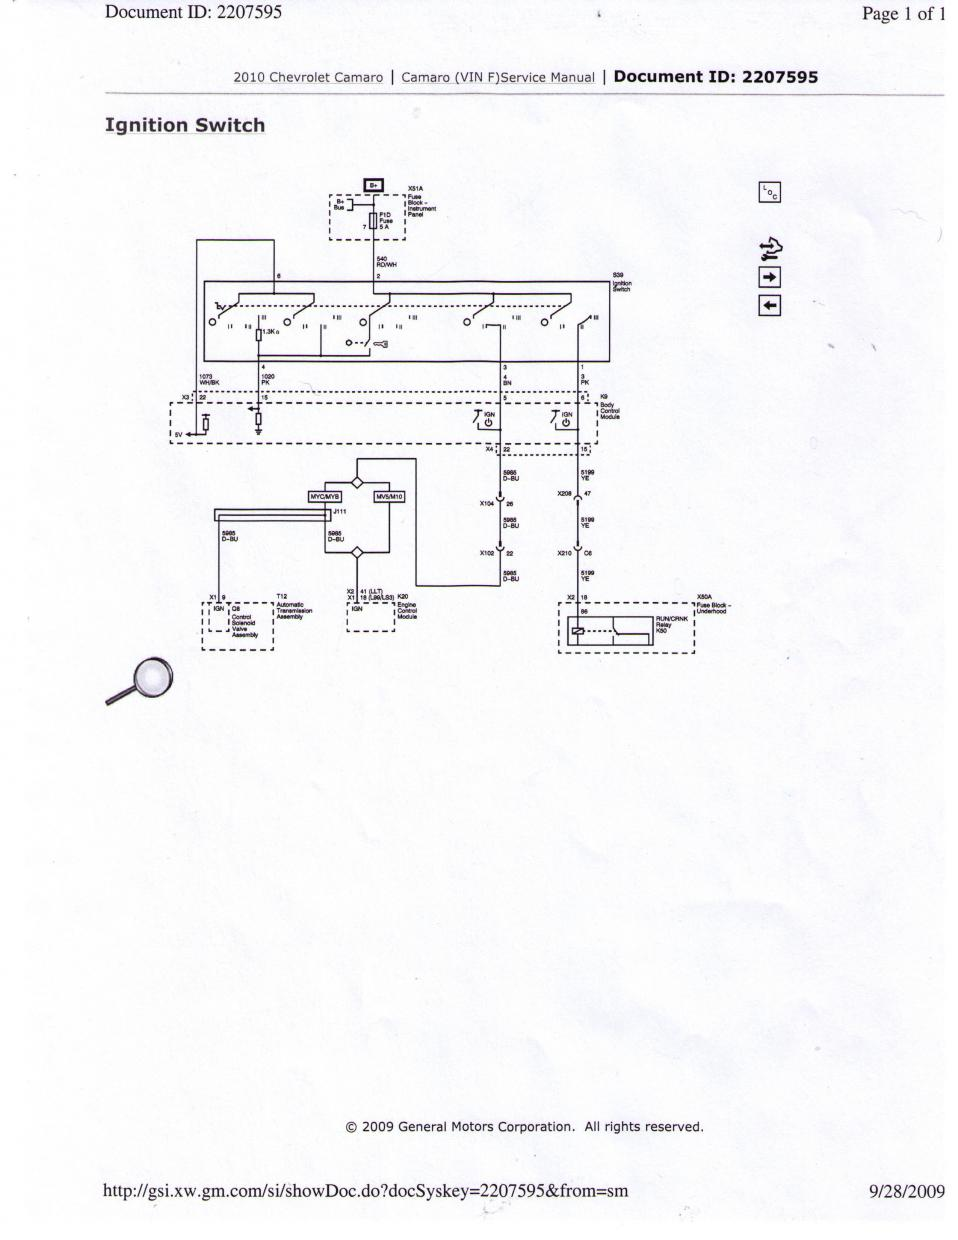 We Need Help With Electronics Wiring Diagrams Camaro5 Chevy Camaro 4 Pin Ignition Switch Diagram Forum Zl1 Ss And V6 Forums